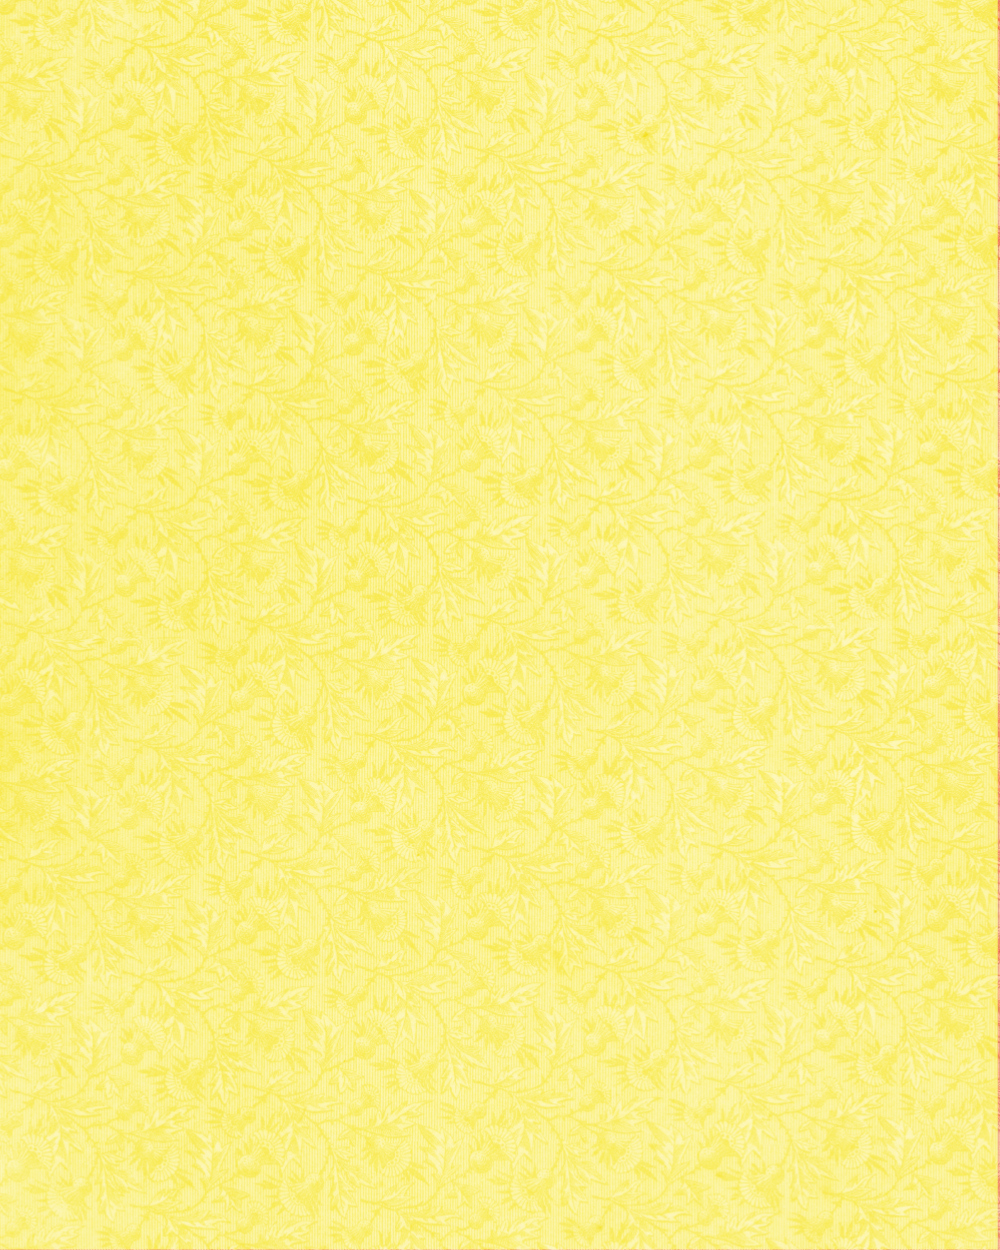 Floral Paper yellow